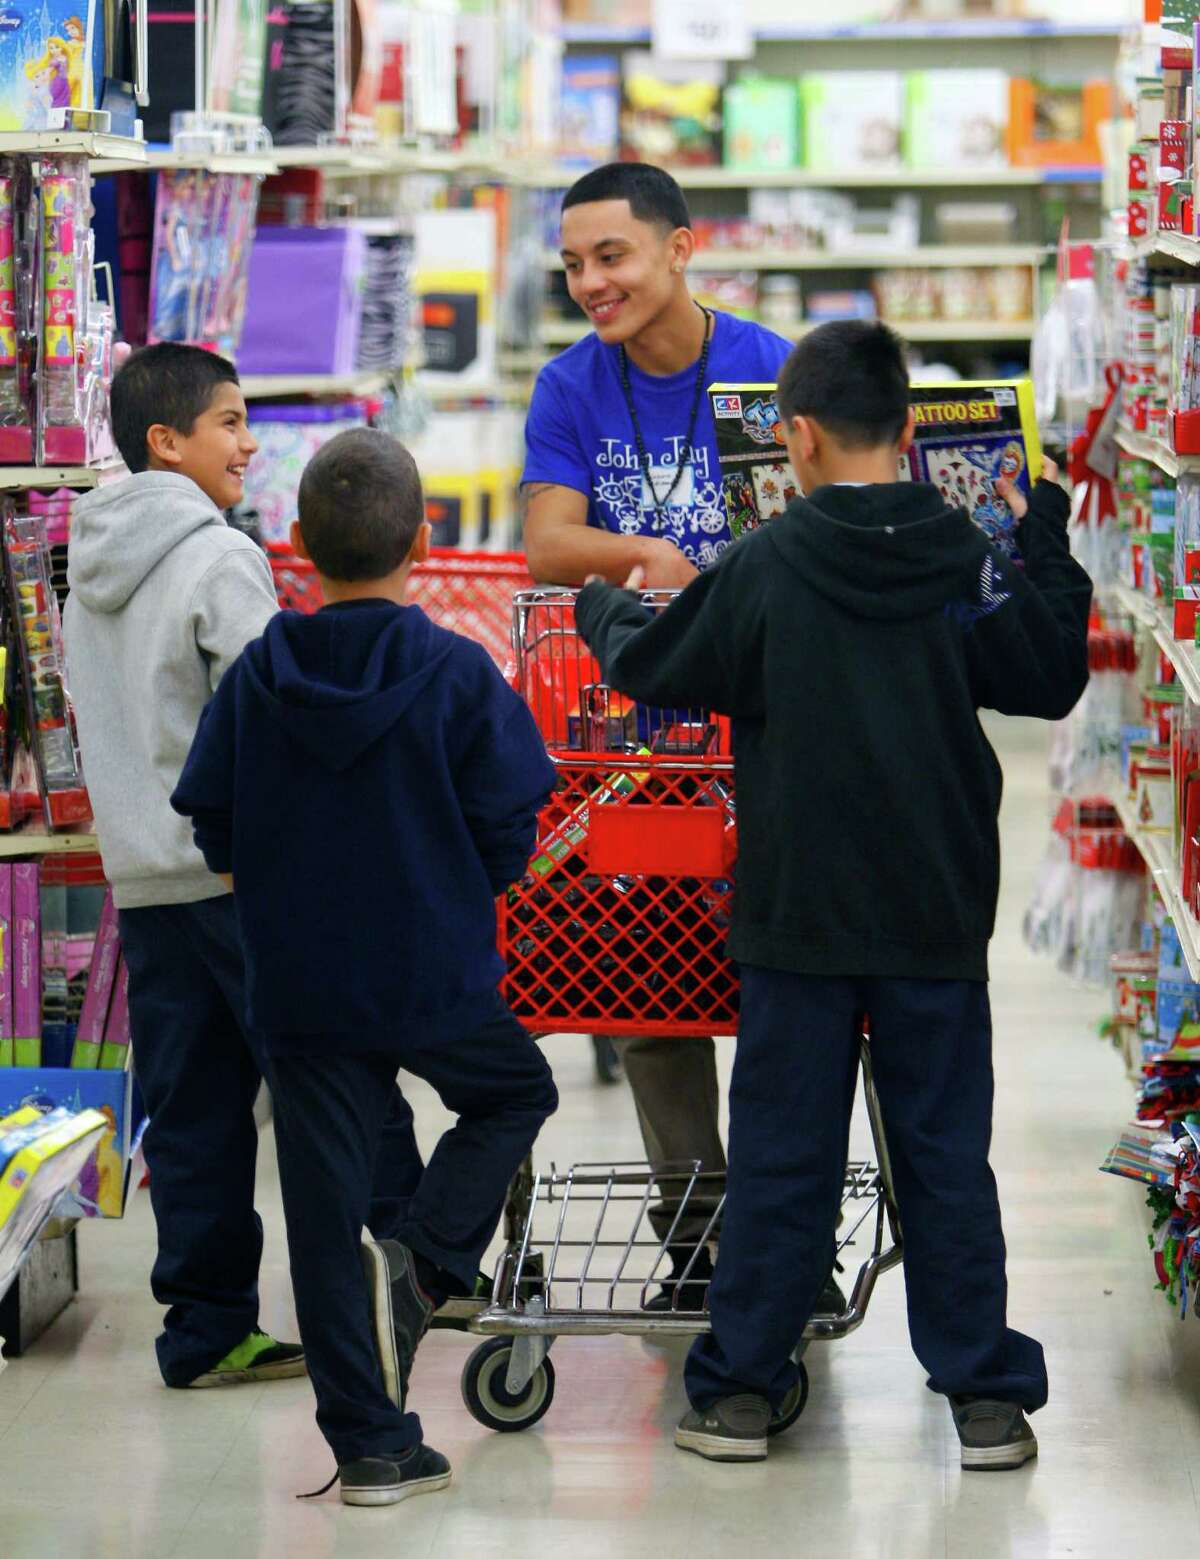 Lazaro Alvarado, facing camera, from John Jay High School, helps elementary students Oscar Cruz, from left, Adrian Marsh, and Aries Marsh Tuesday Dec. 18, 2012, pick out toys. Jay High School students, who raised about $7,000 for the giveaway, helped students pick out $25 worth of toys and a pair of shoes costing up to $25.